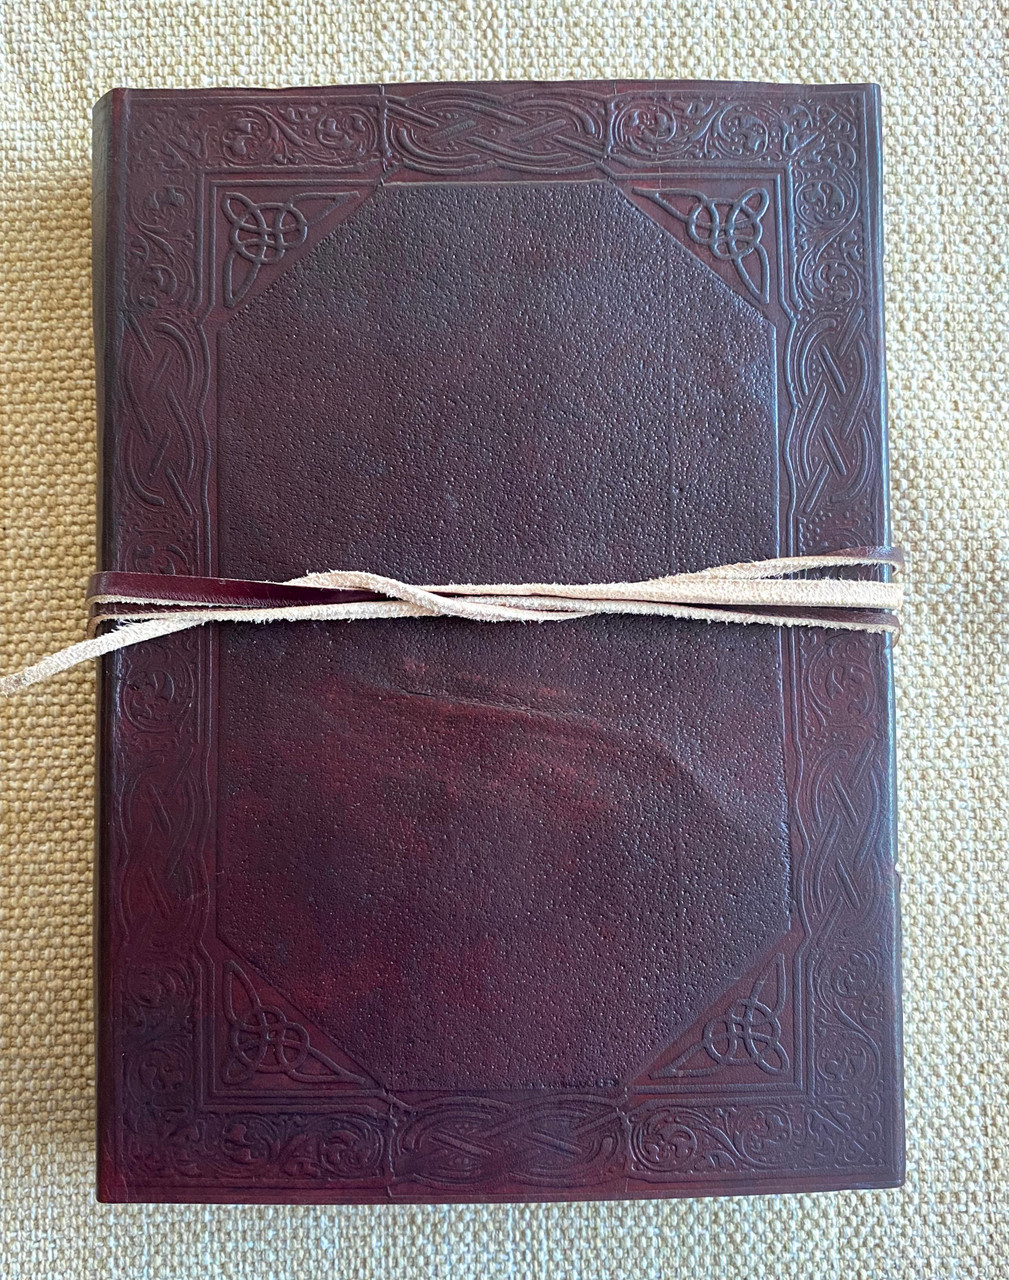 weakened pinched leather on outside back cover